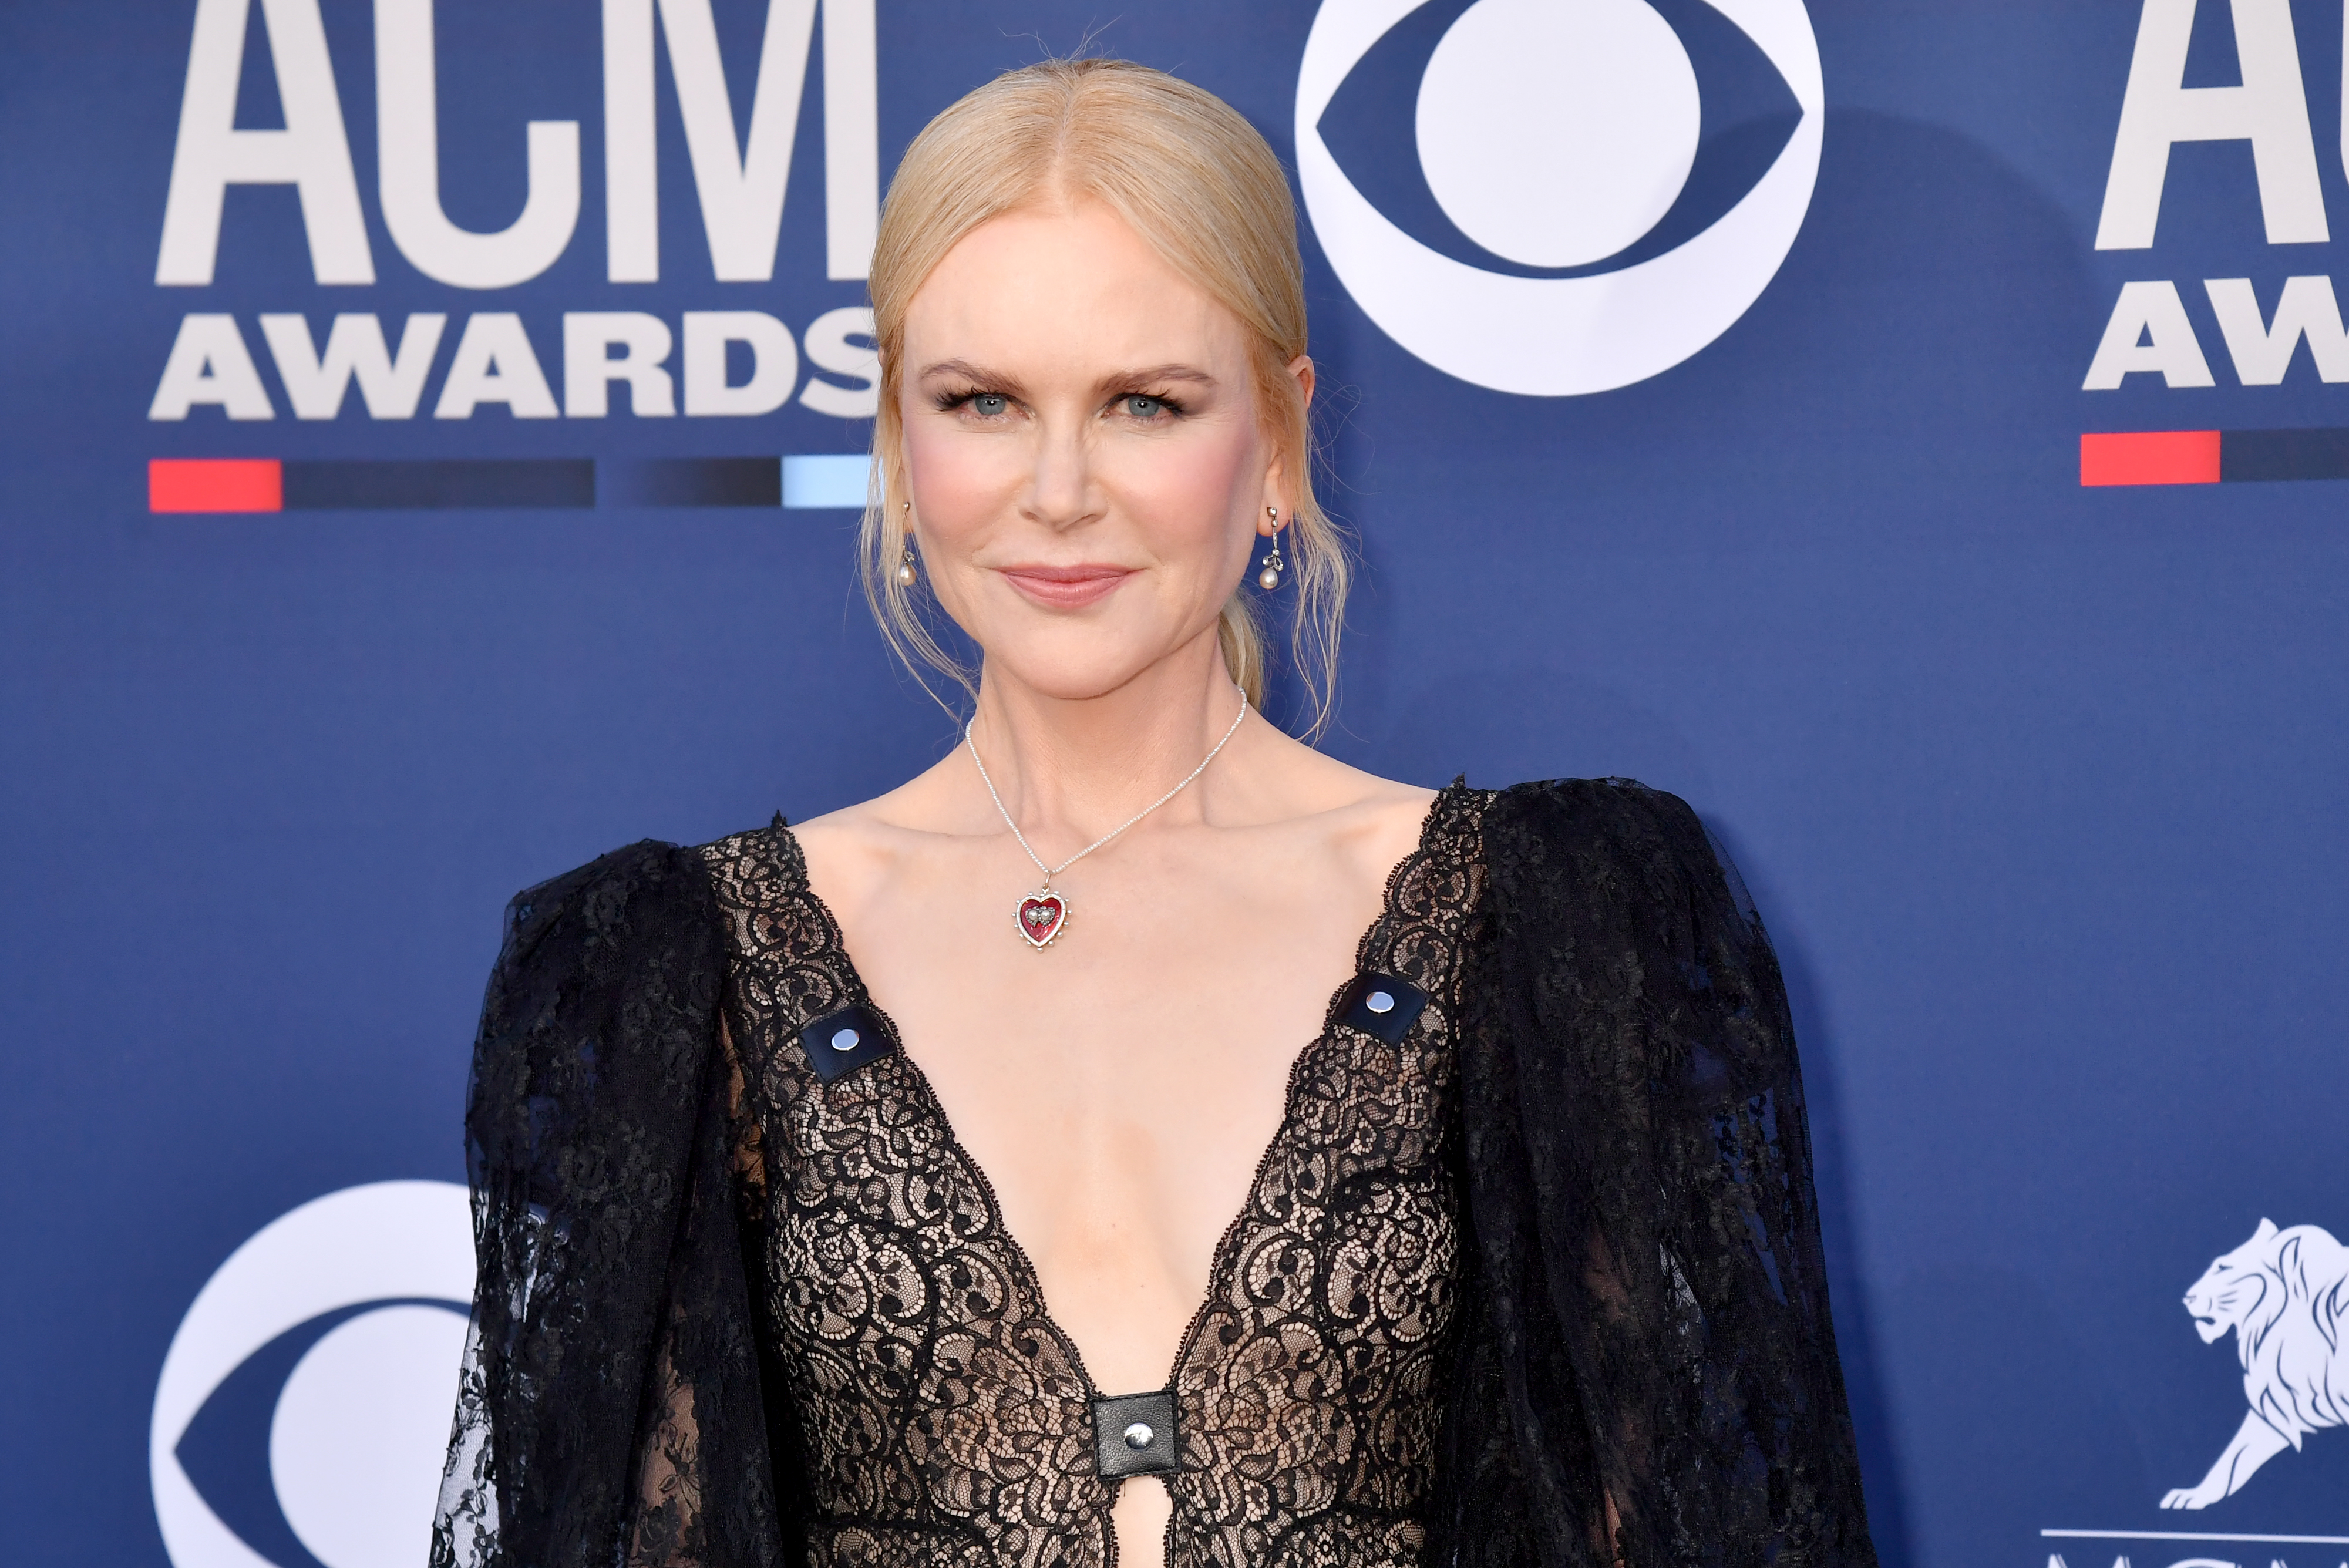 Nicole Kidman says she's 'teased' for her belief in God, going to Church as a family - Fox News